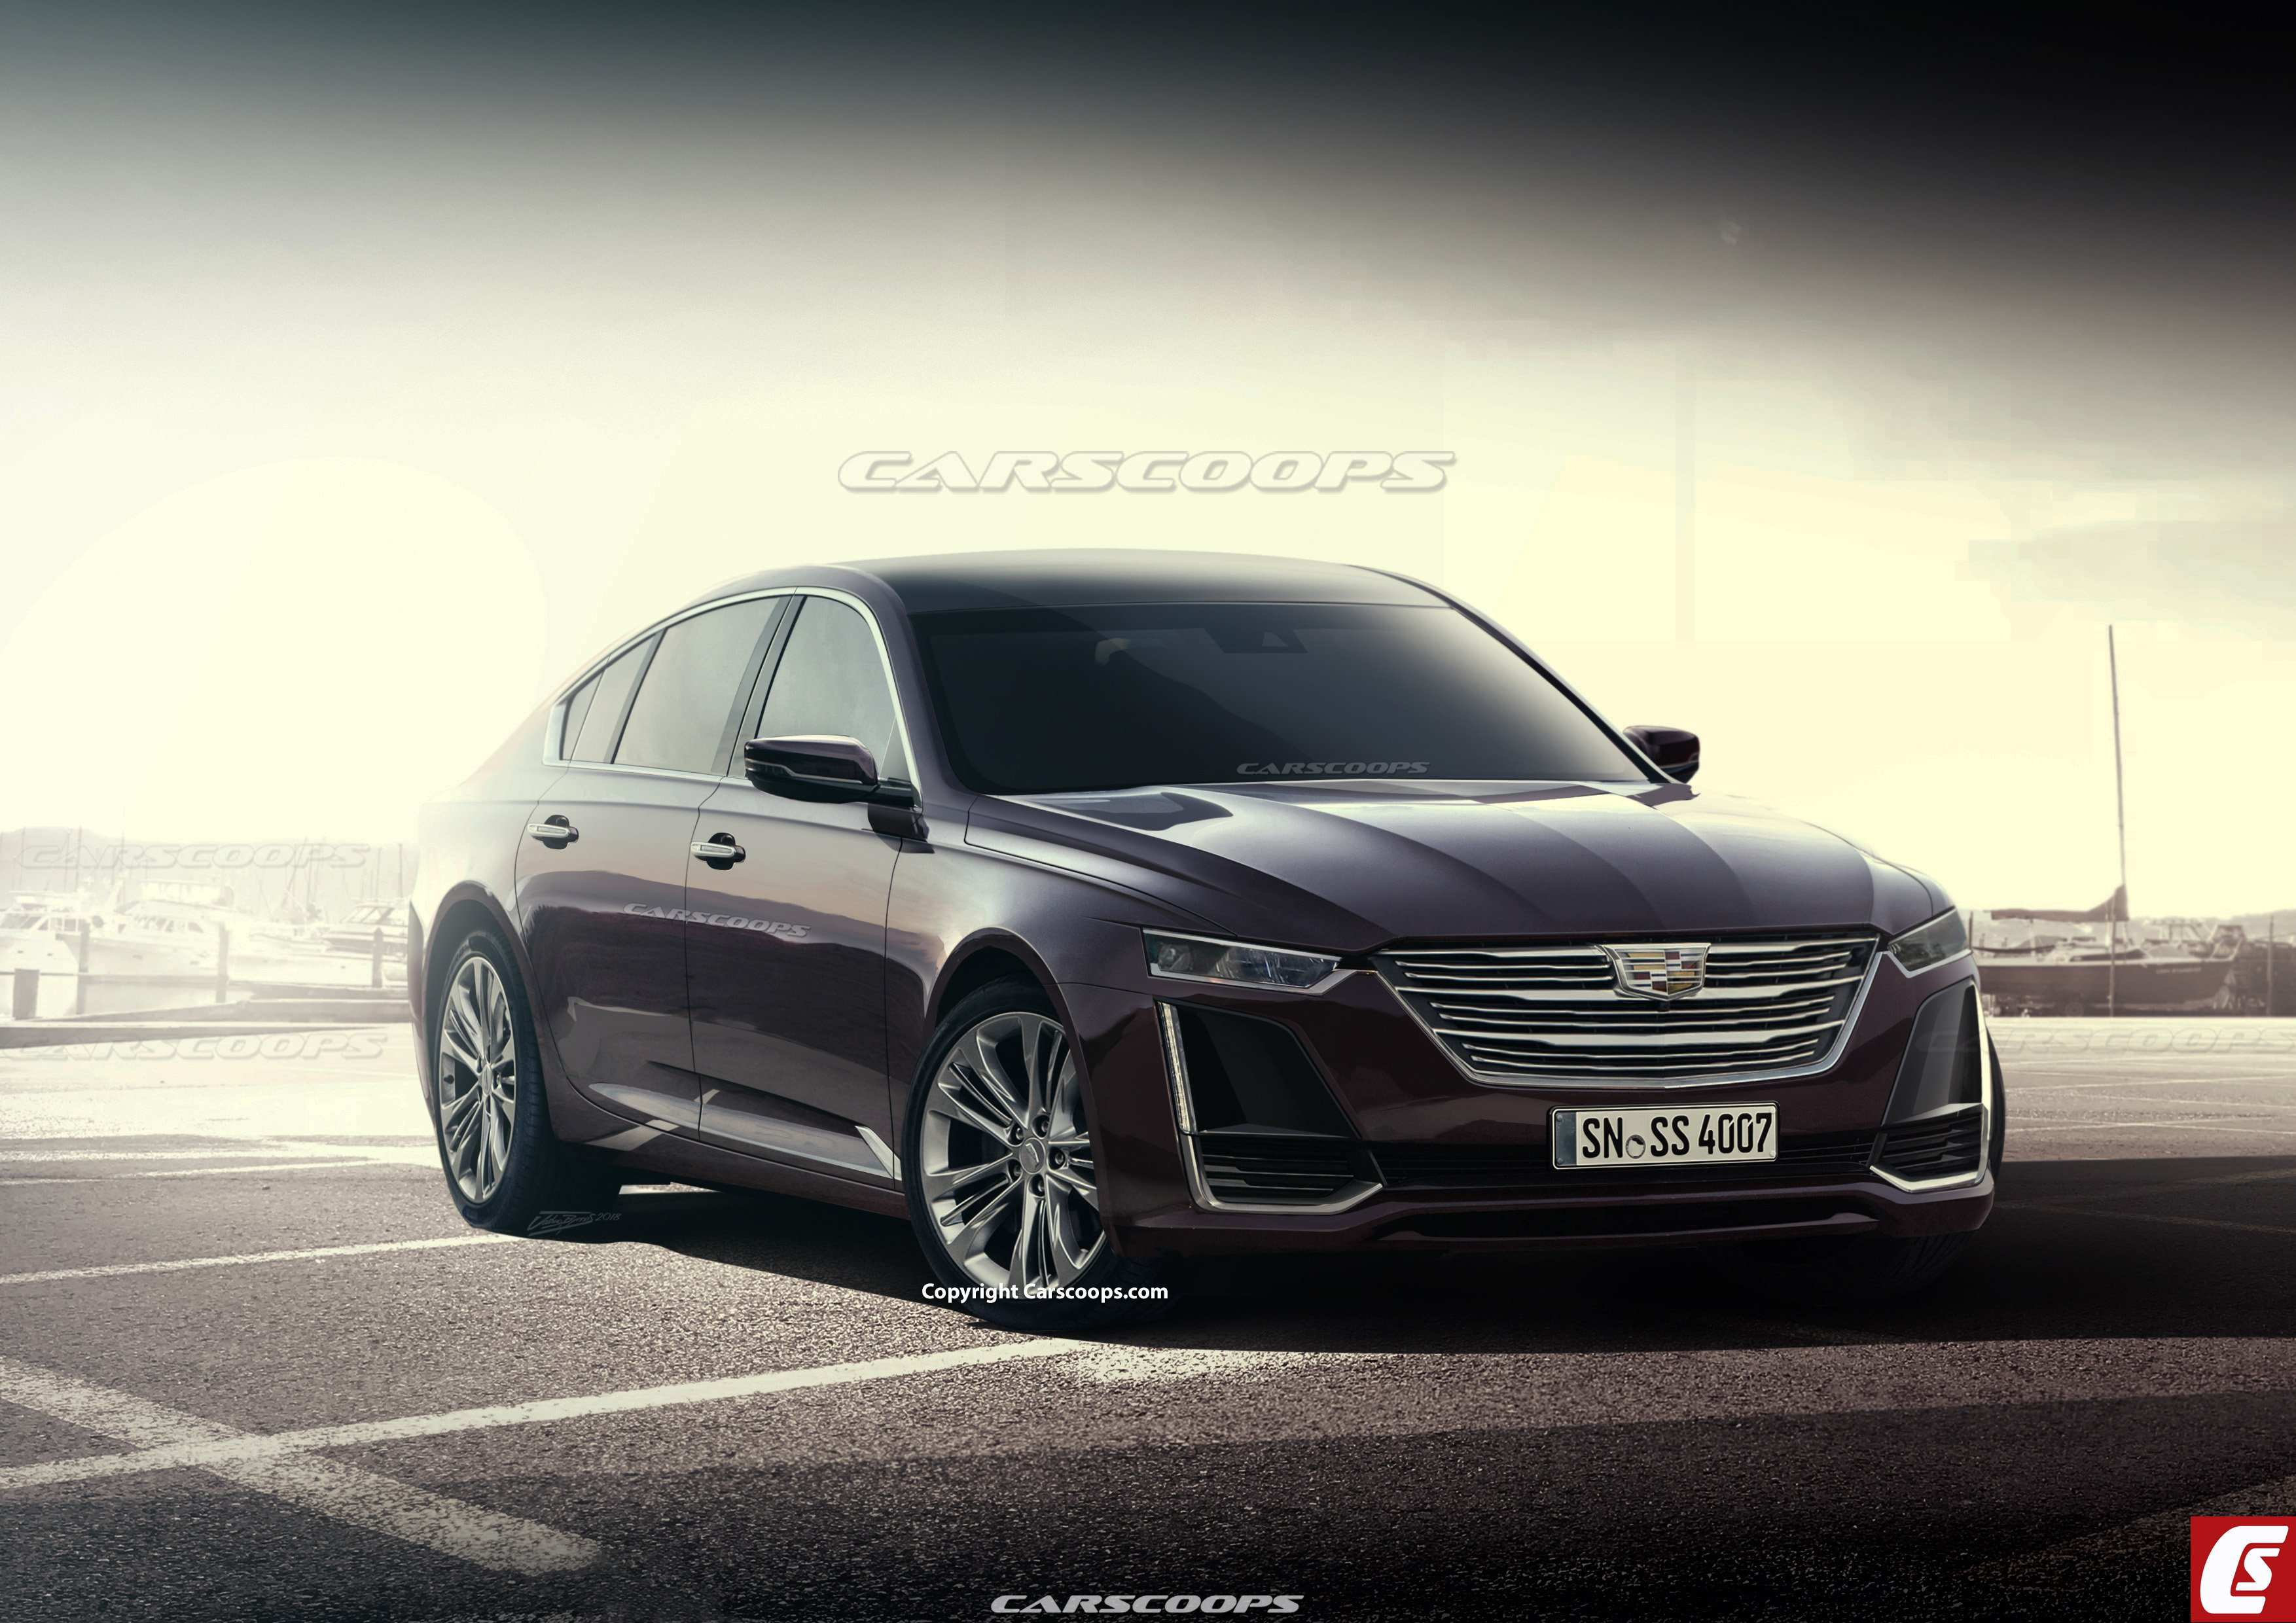 39 The Best Cadillac Ct5 2020 Price And Release Date